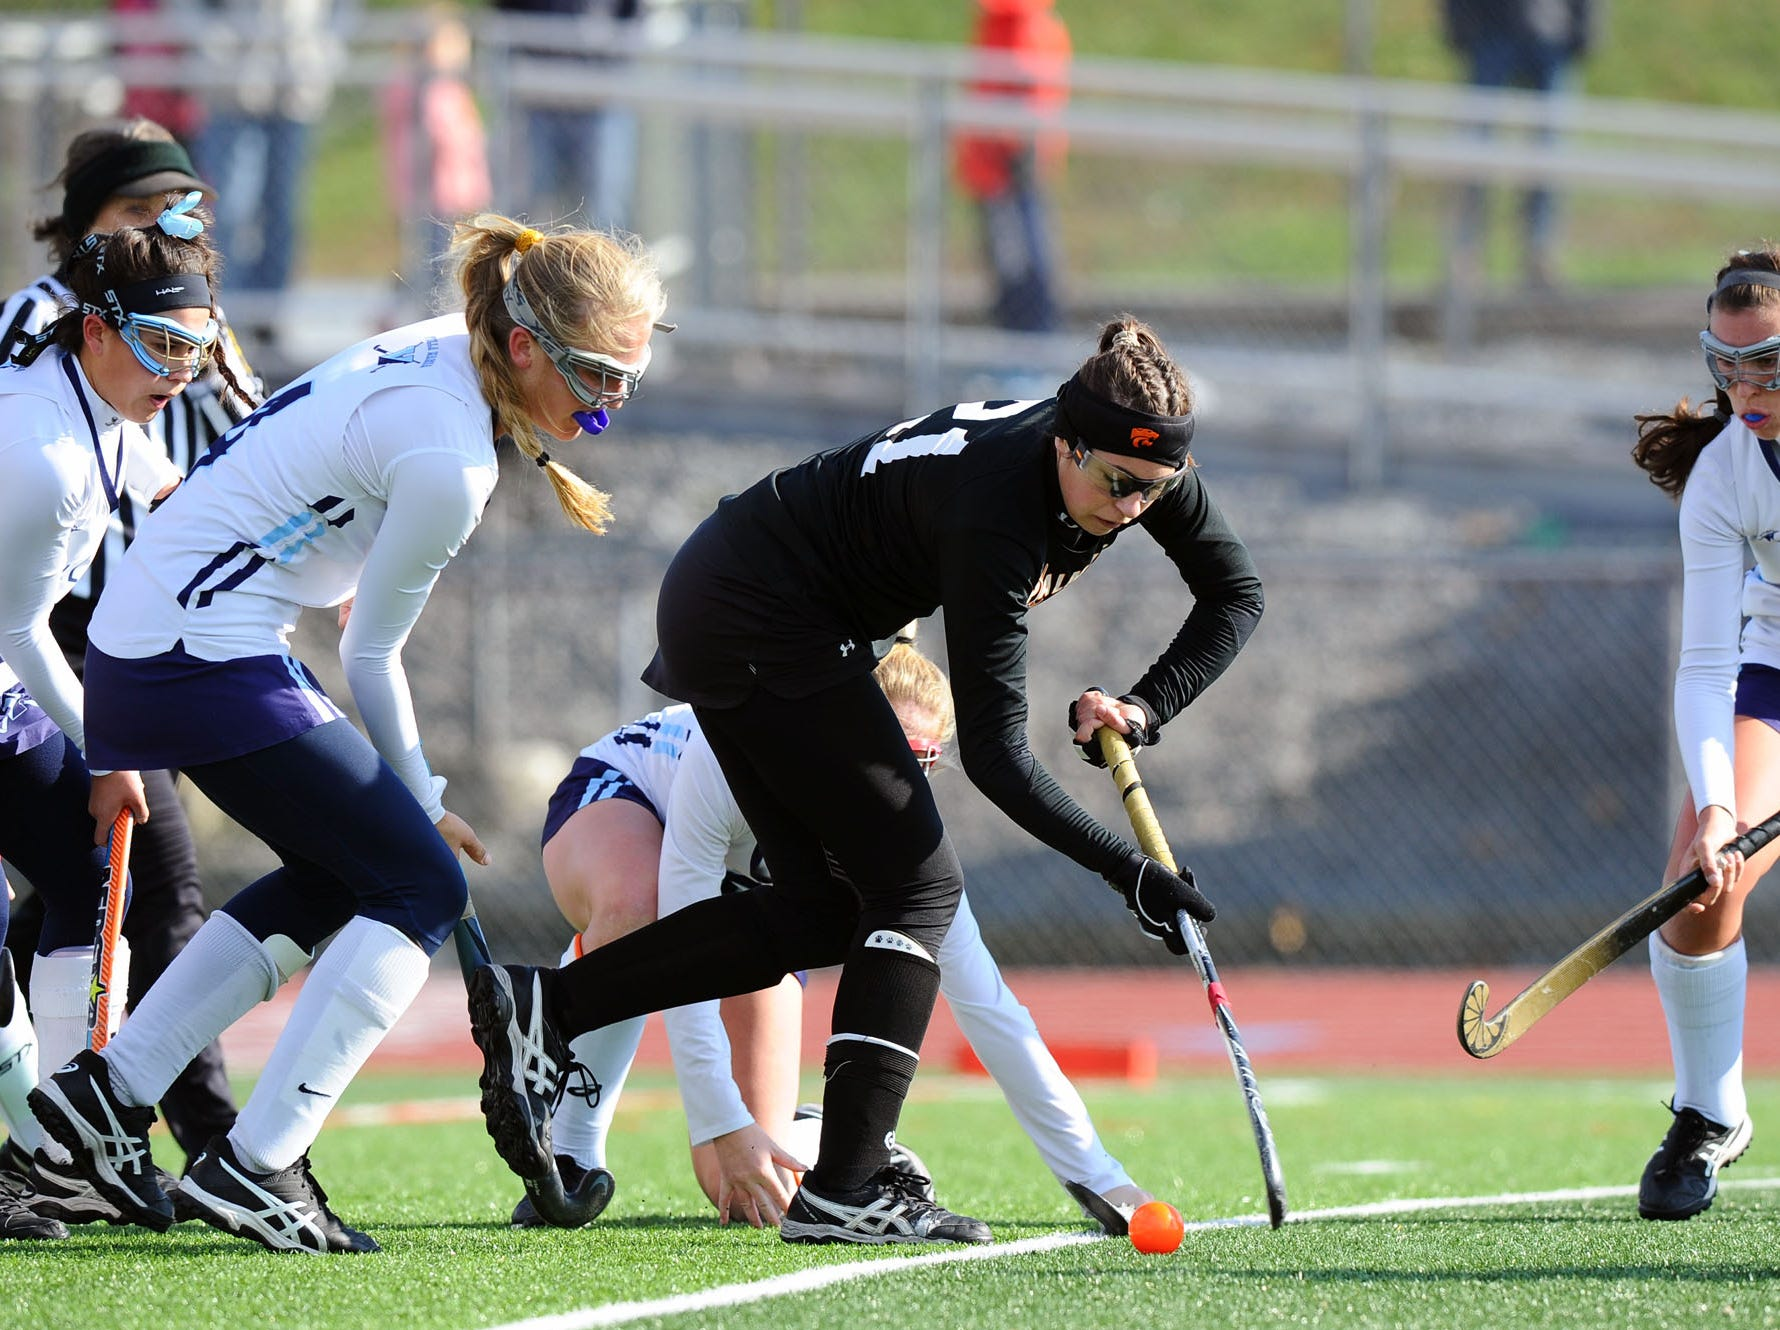 Palmyra's Lauren Wadas (21) tries to control the ball in front of the Villa Maria goal as Adele Iacobucci (4) defends.